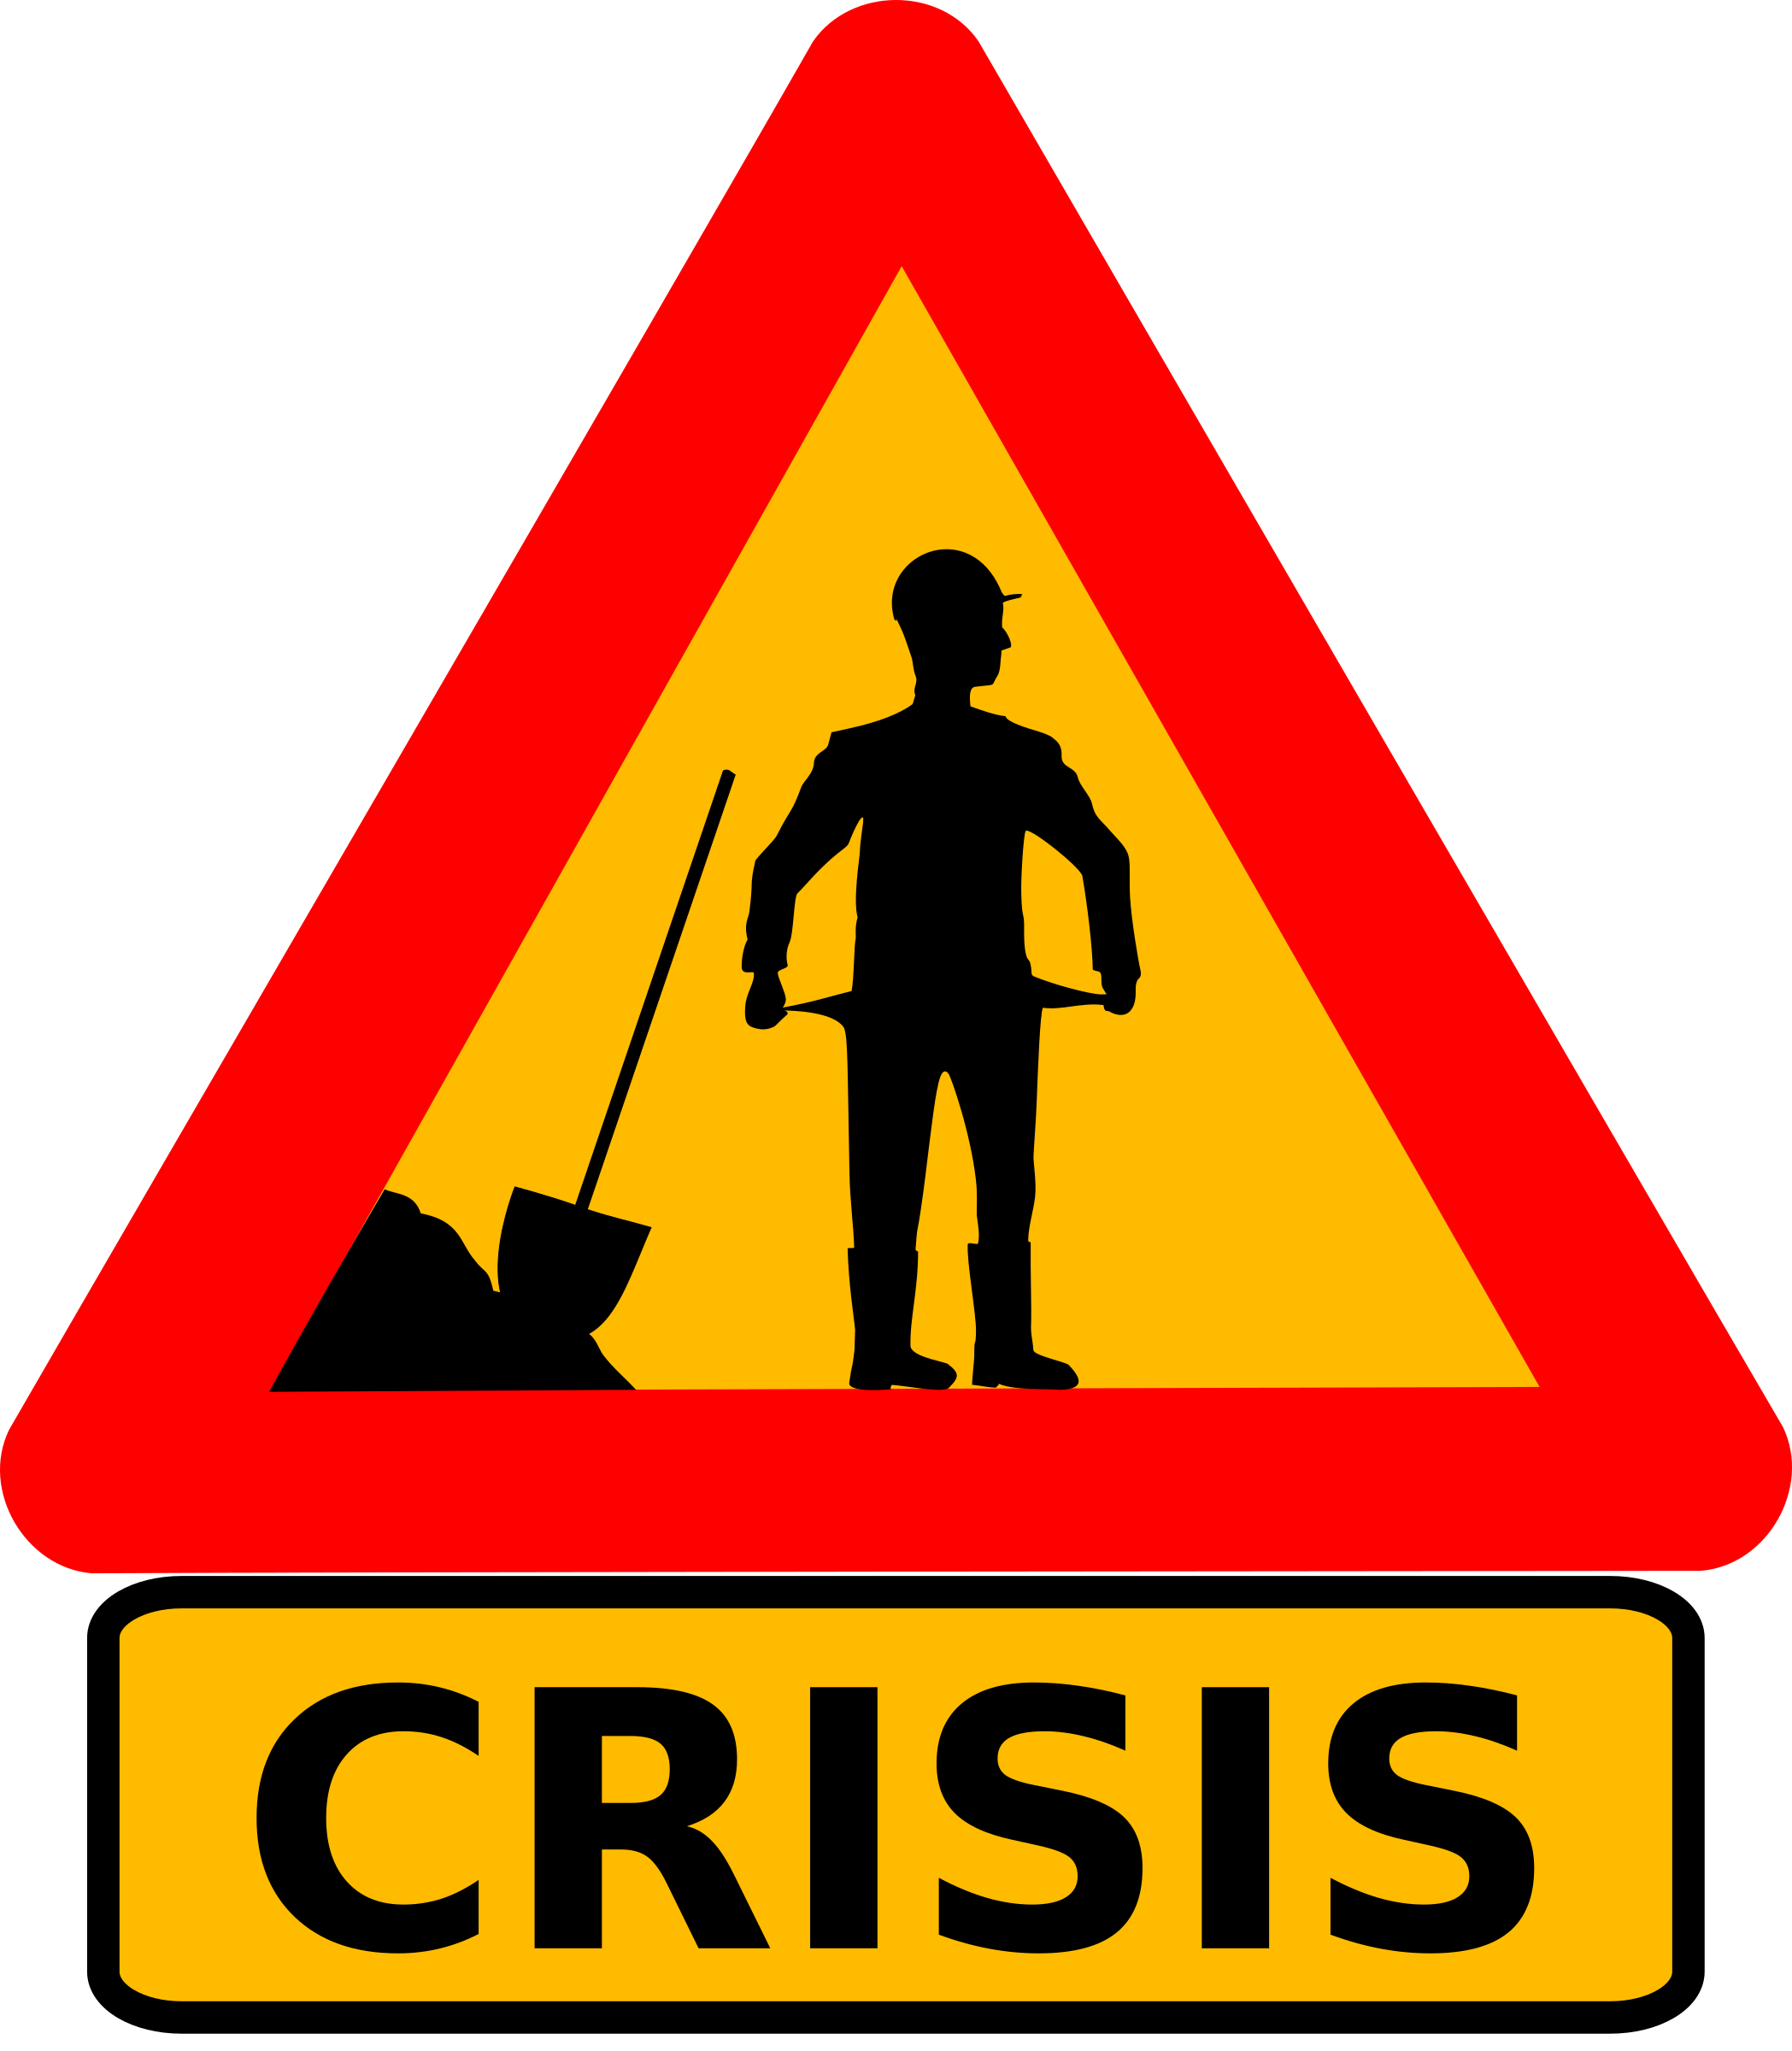 Poverty clipart financial issue. Warning crisis big image